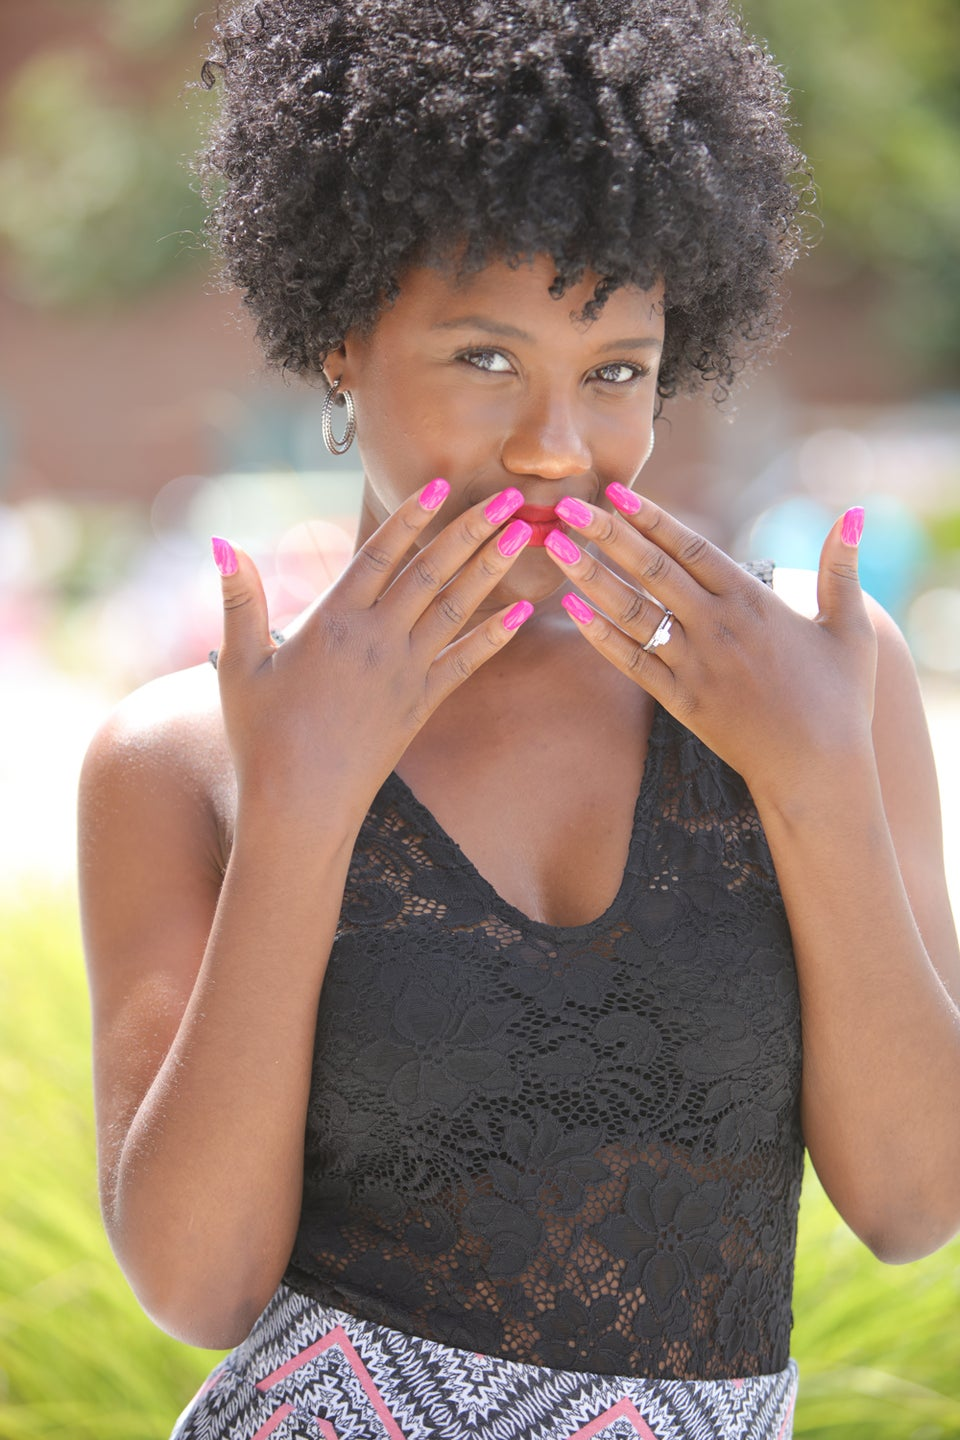 Can You Use Jell-O to Treat Dry Nails? Plus, 7 Other Popular Nail Myths, Debunked